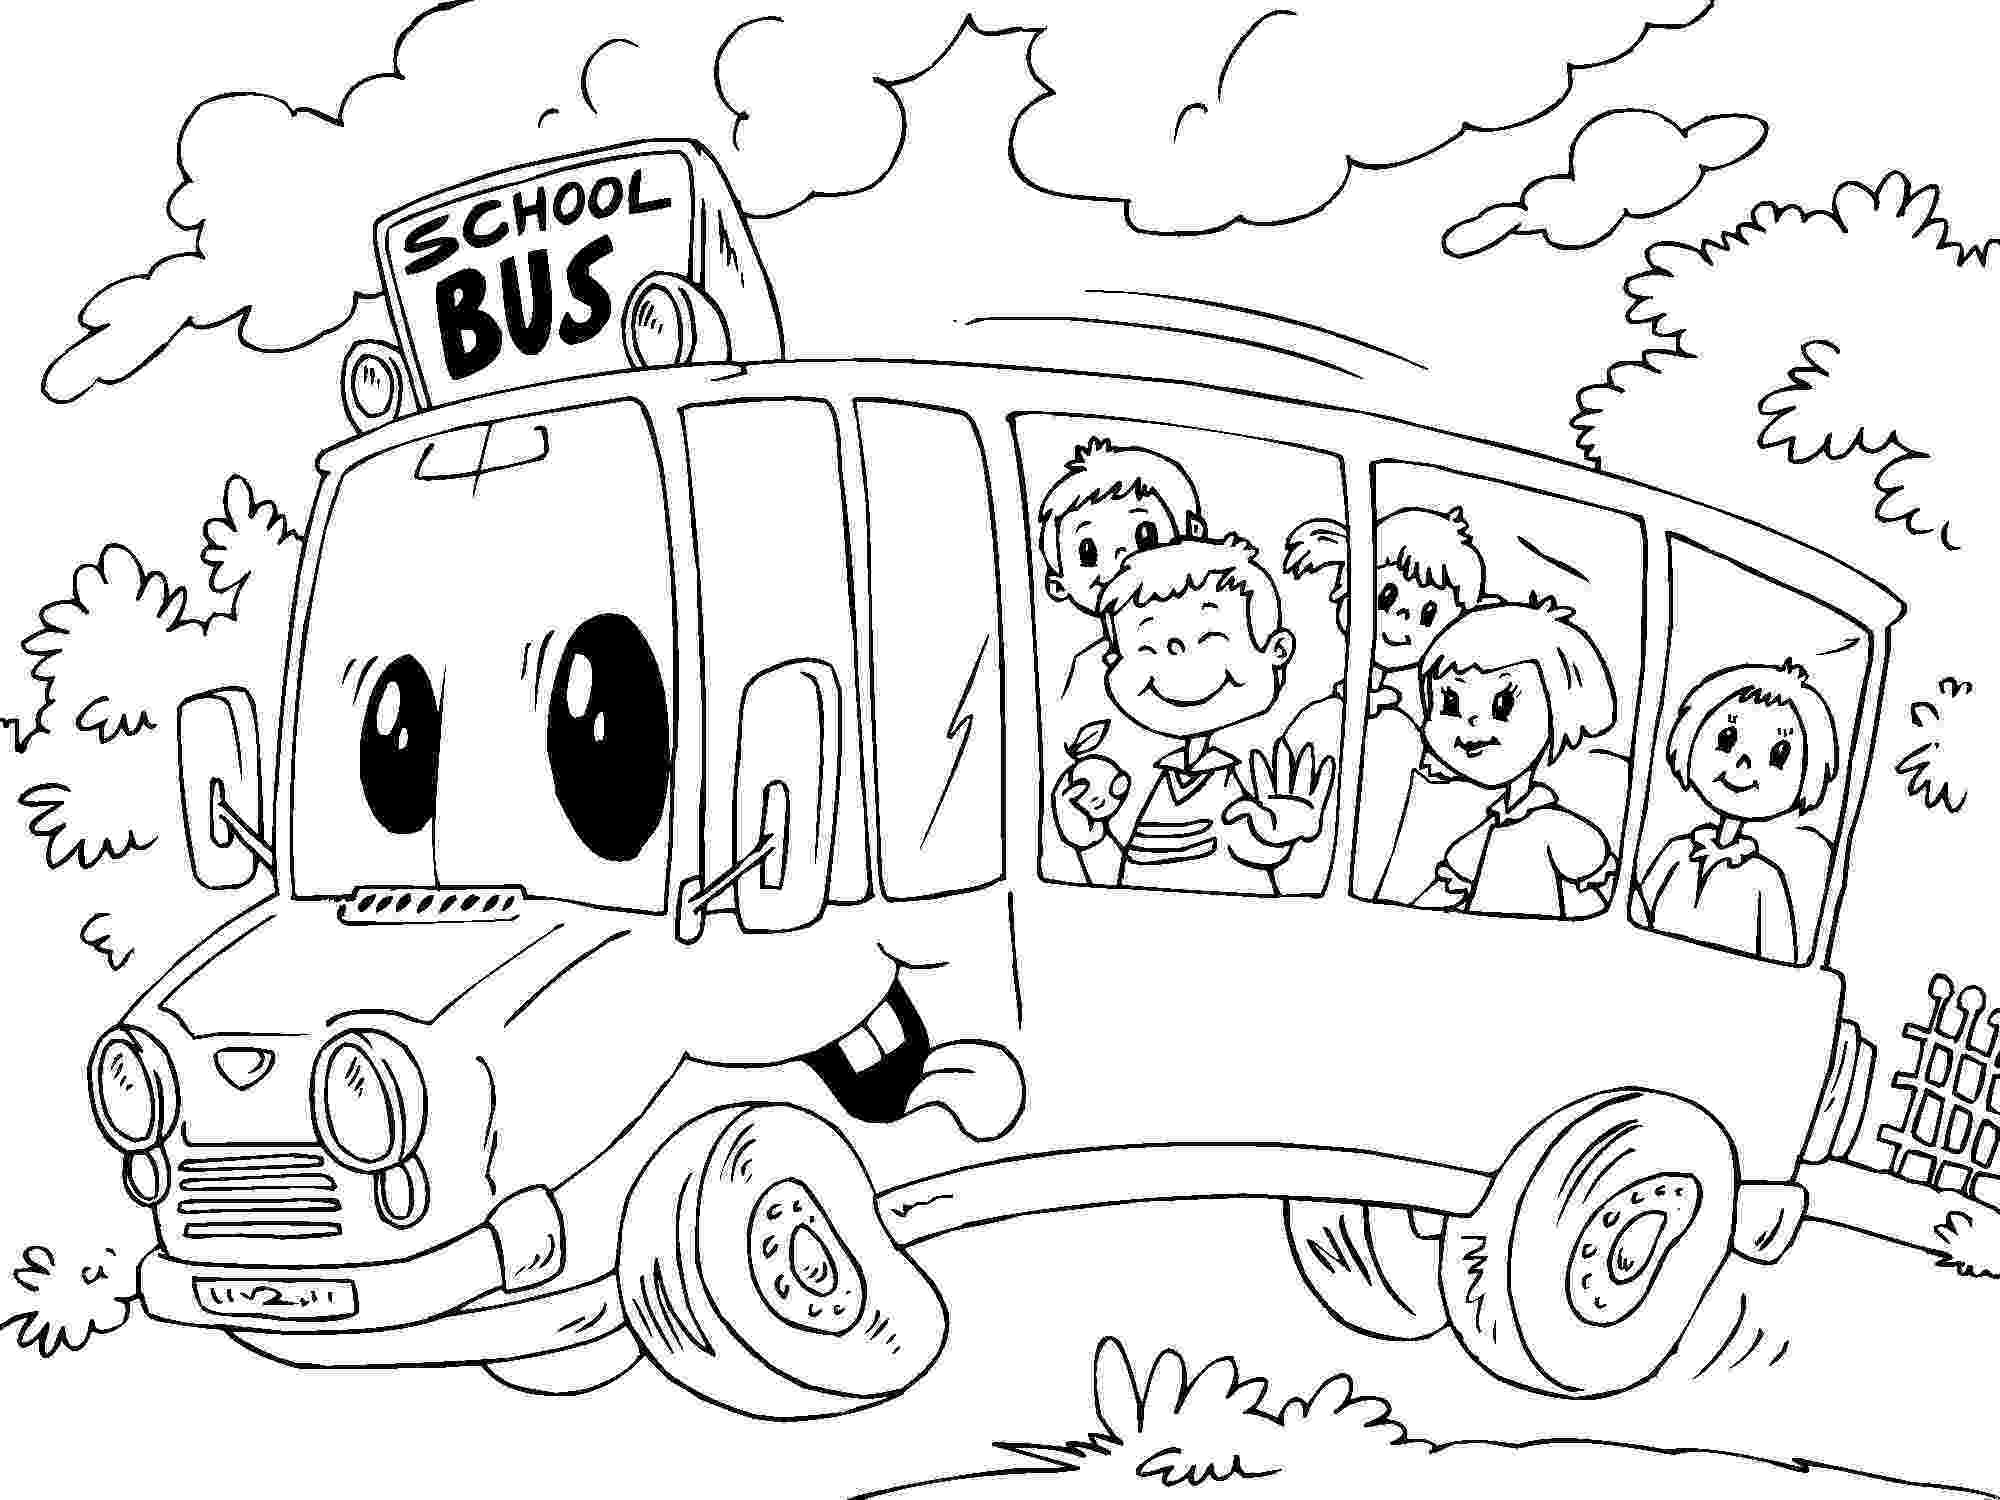 bus coloring pages free printable school bus coloring pages for kids bus coloring pages